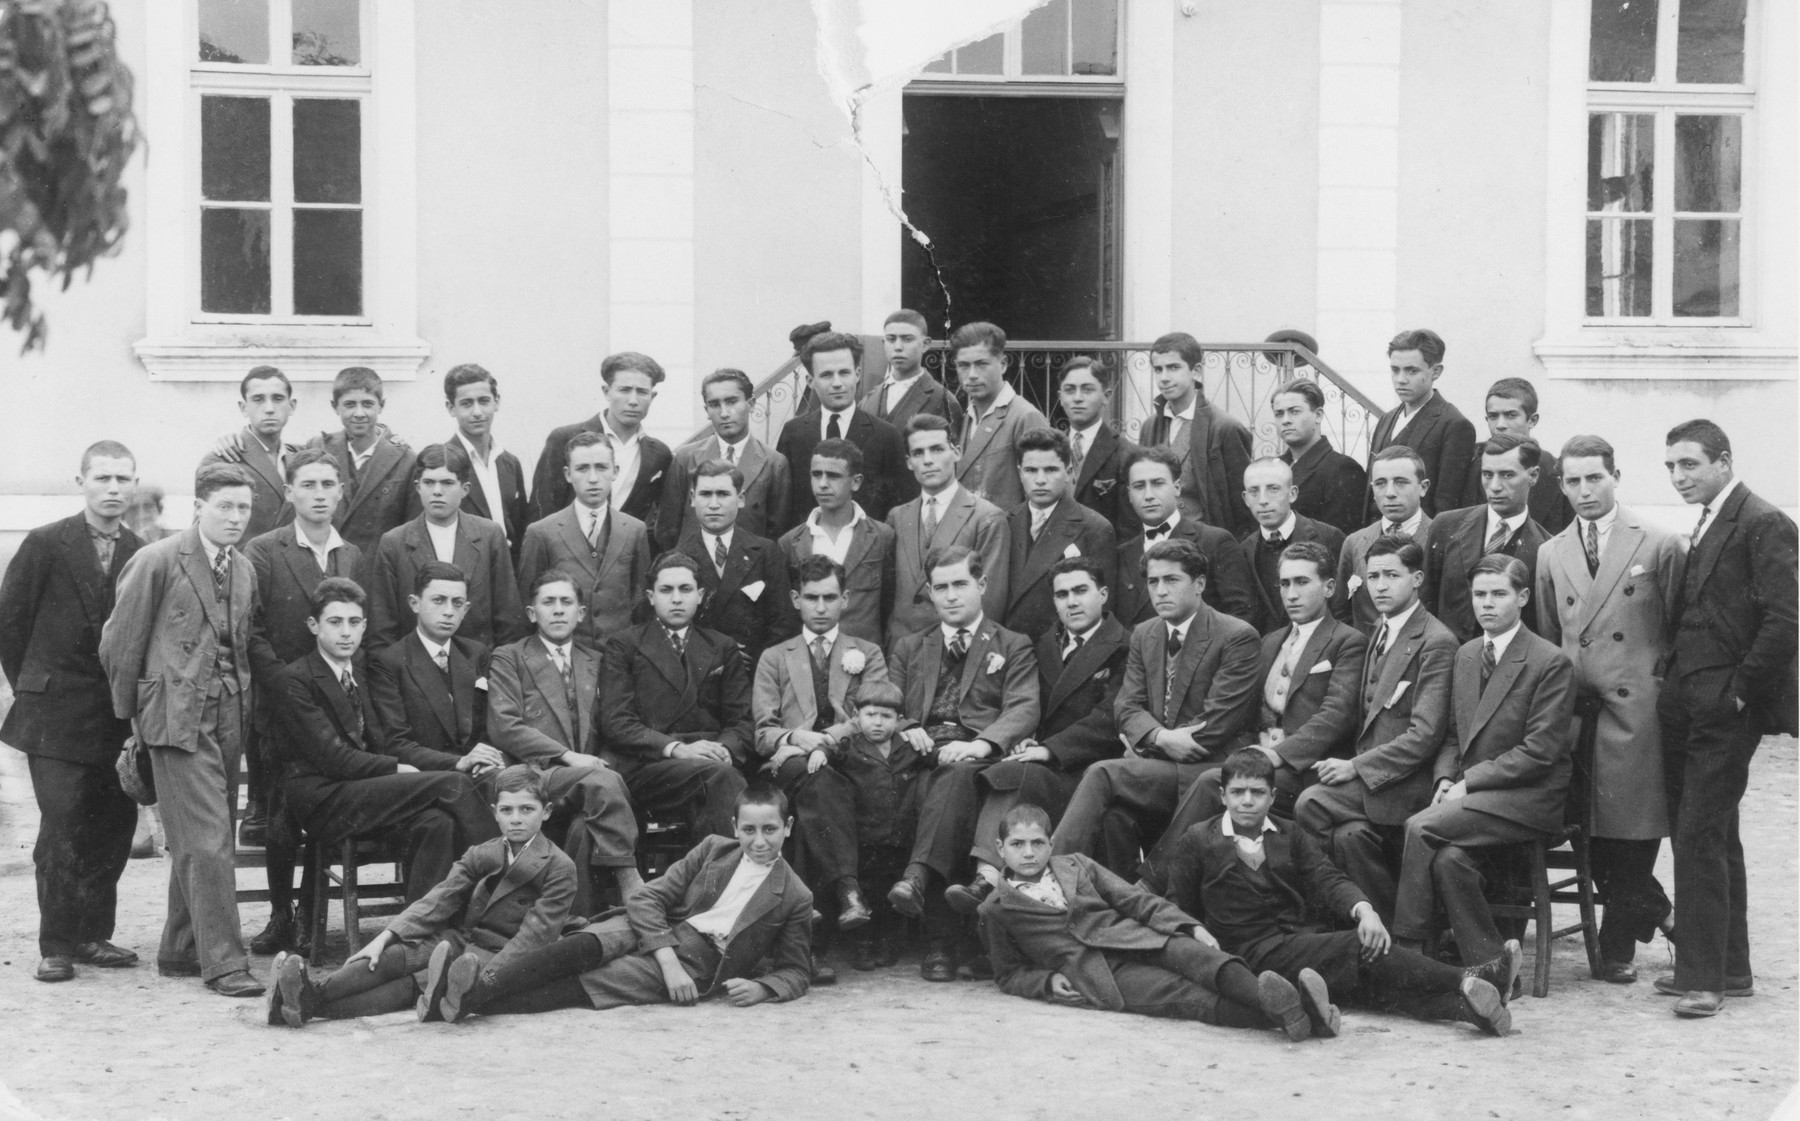 Group portrait of [what probably is a boy's school] in Macedonia.